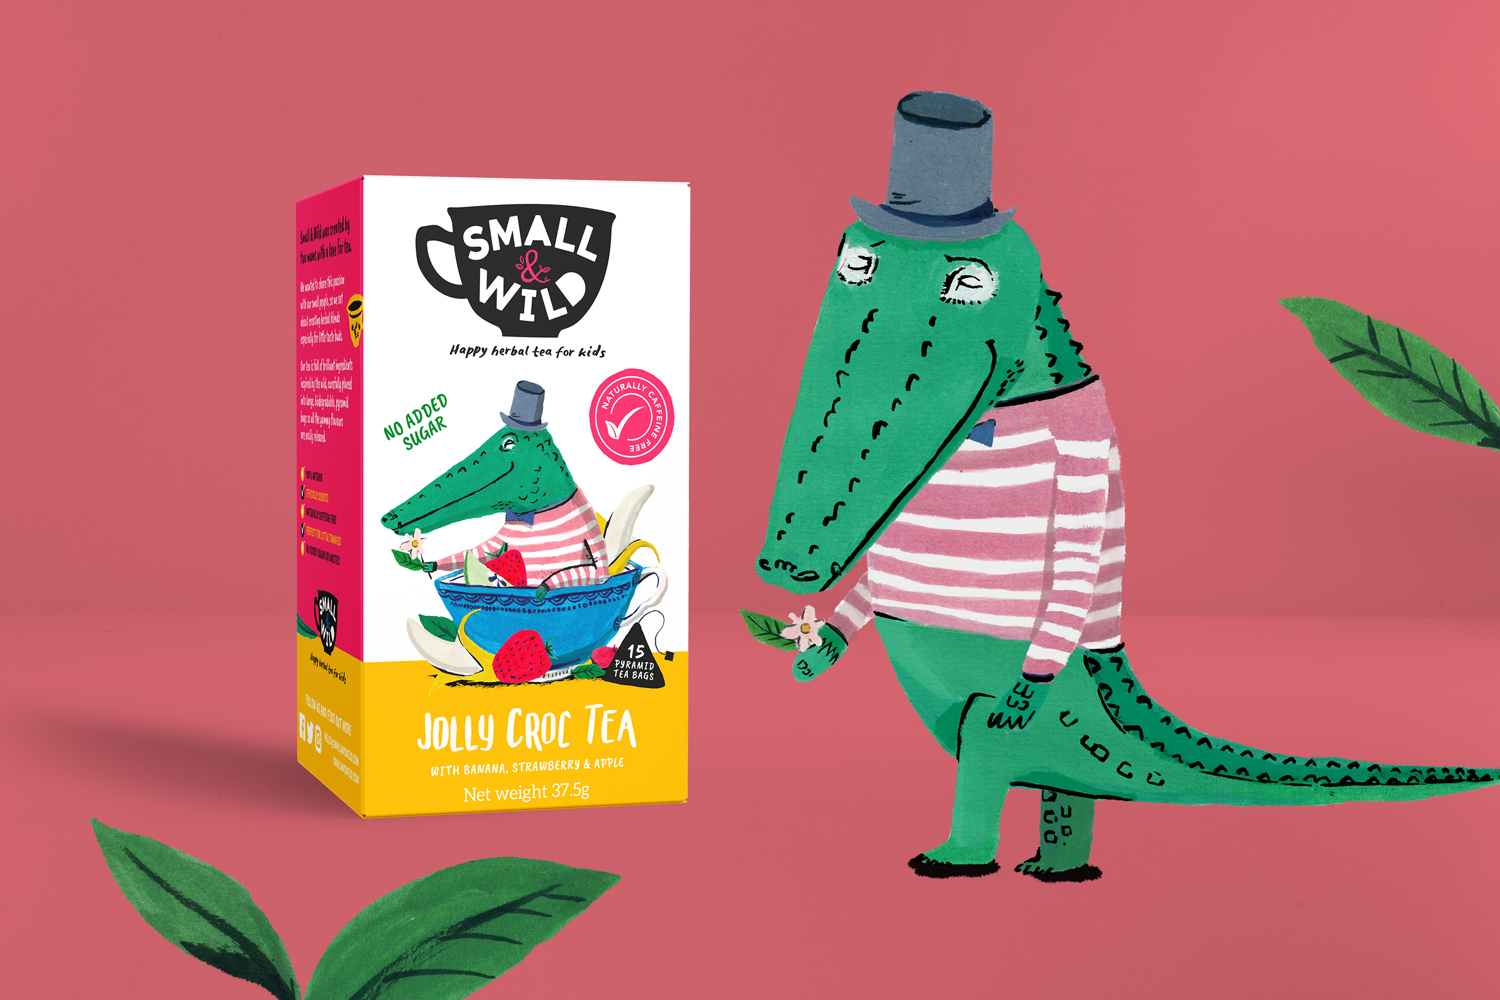 Small & Wild tea for children packaging design, crocodile painted illustration by Wild Bear designs